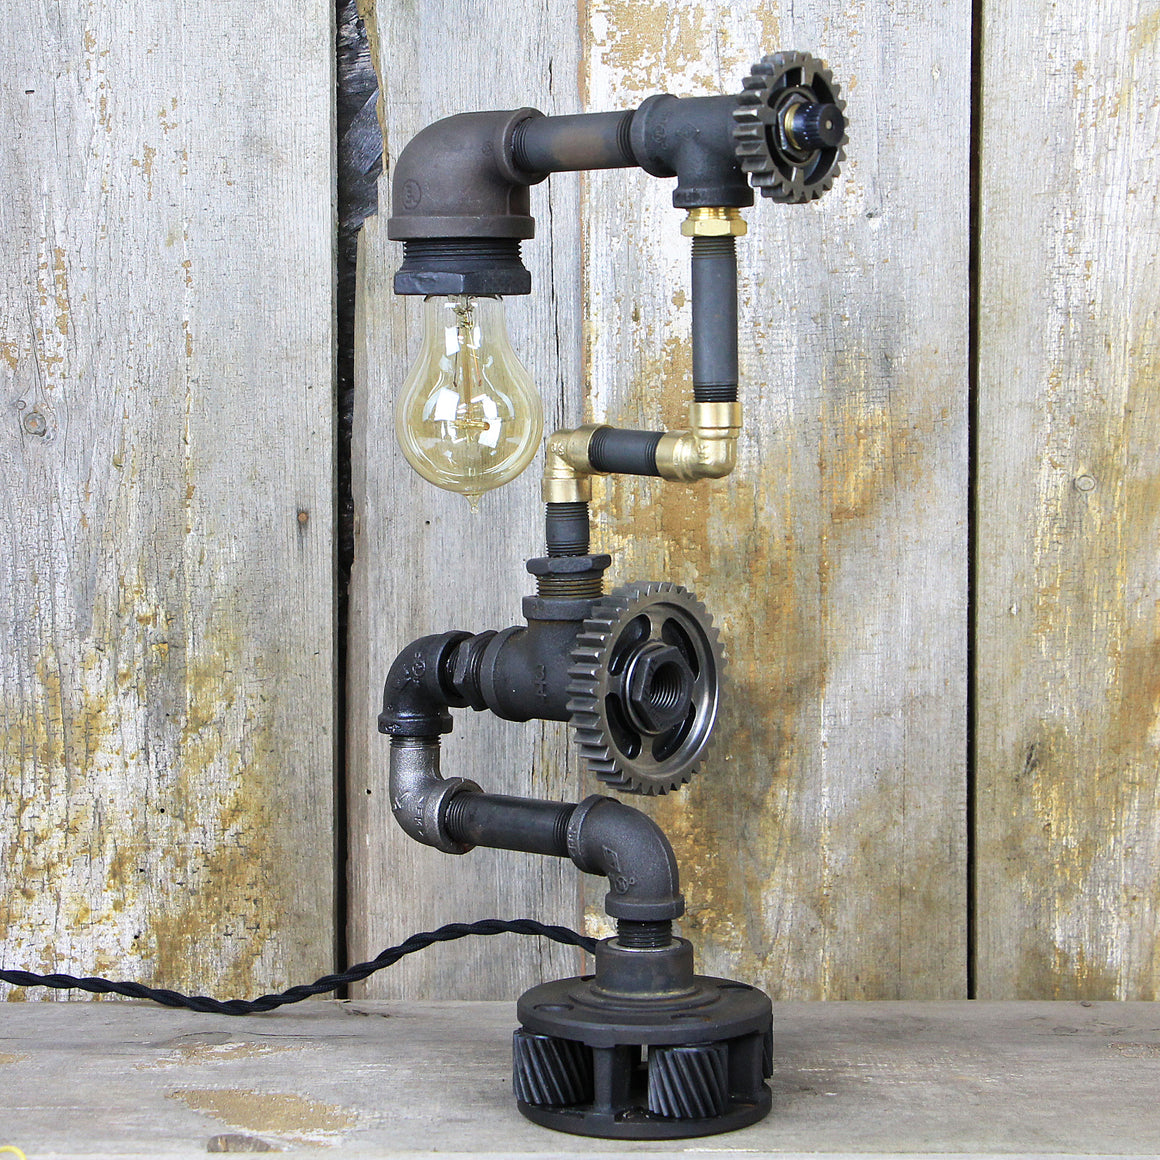 Industrial Table Lamp with Multi Color and Texture Finishes - Steampunk Desk Lamp #90 - The Lighting Works